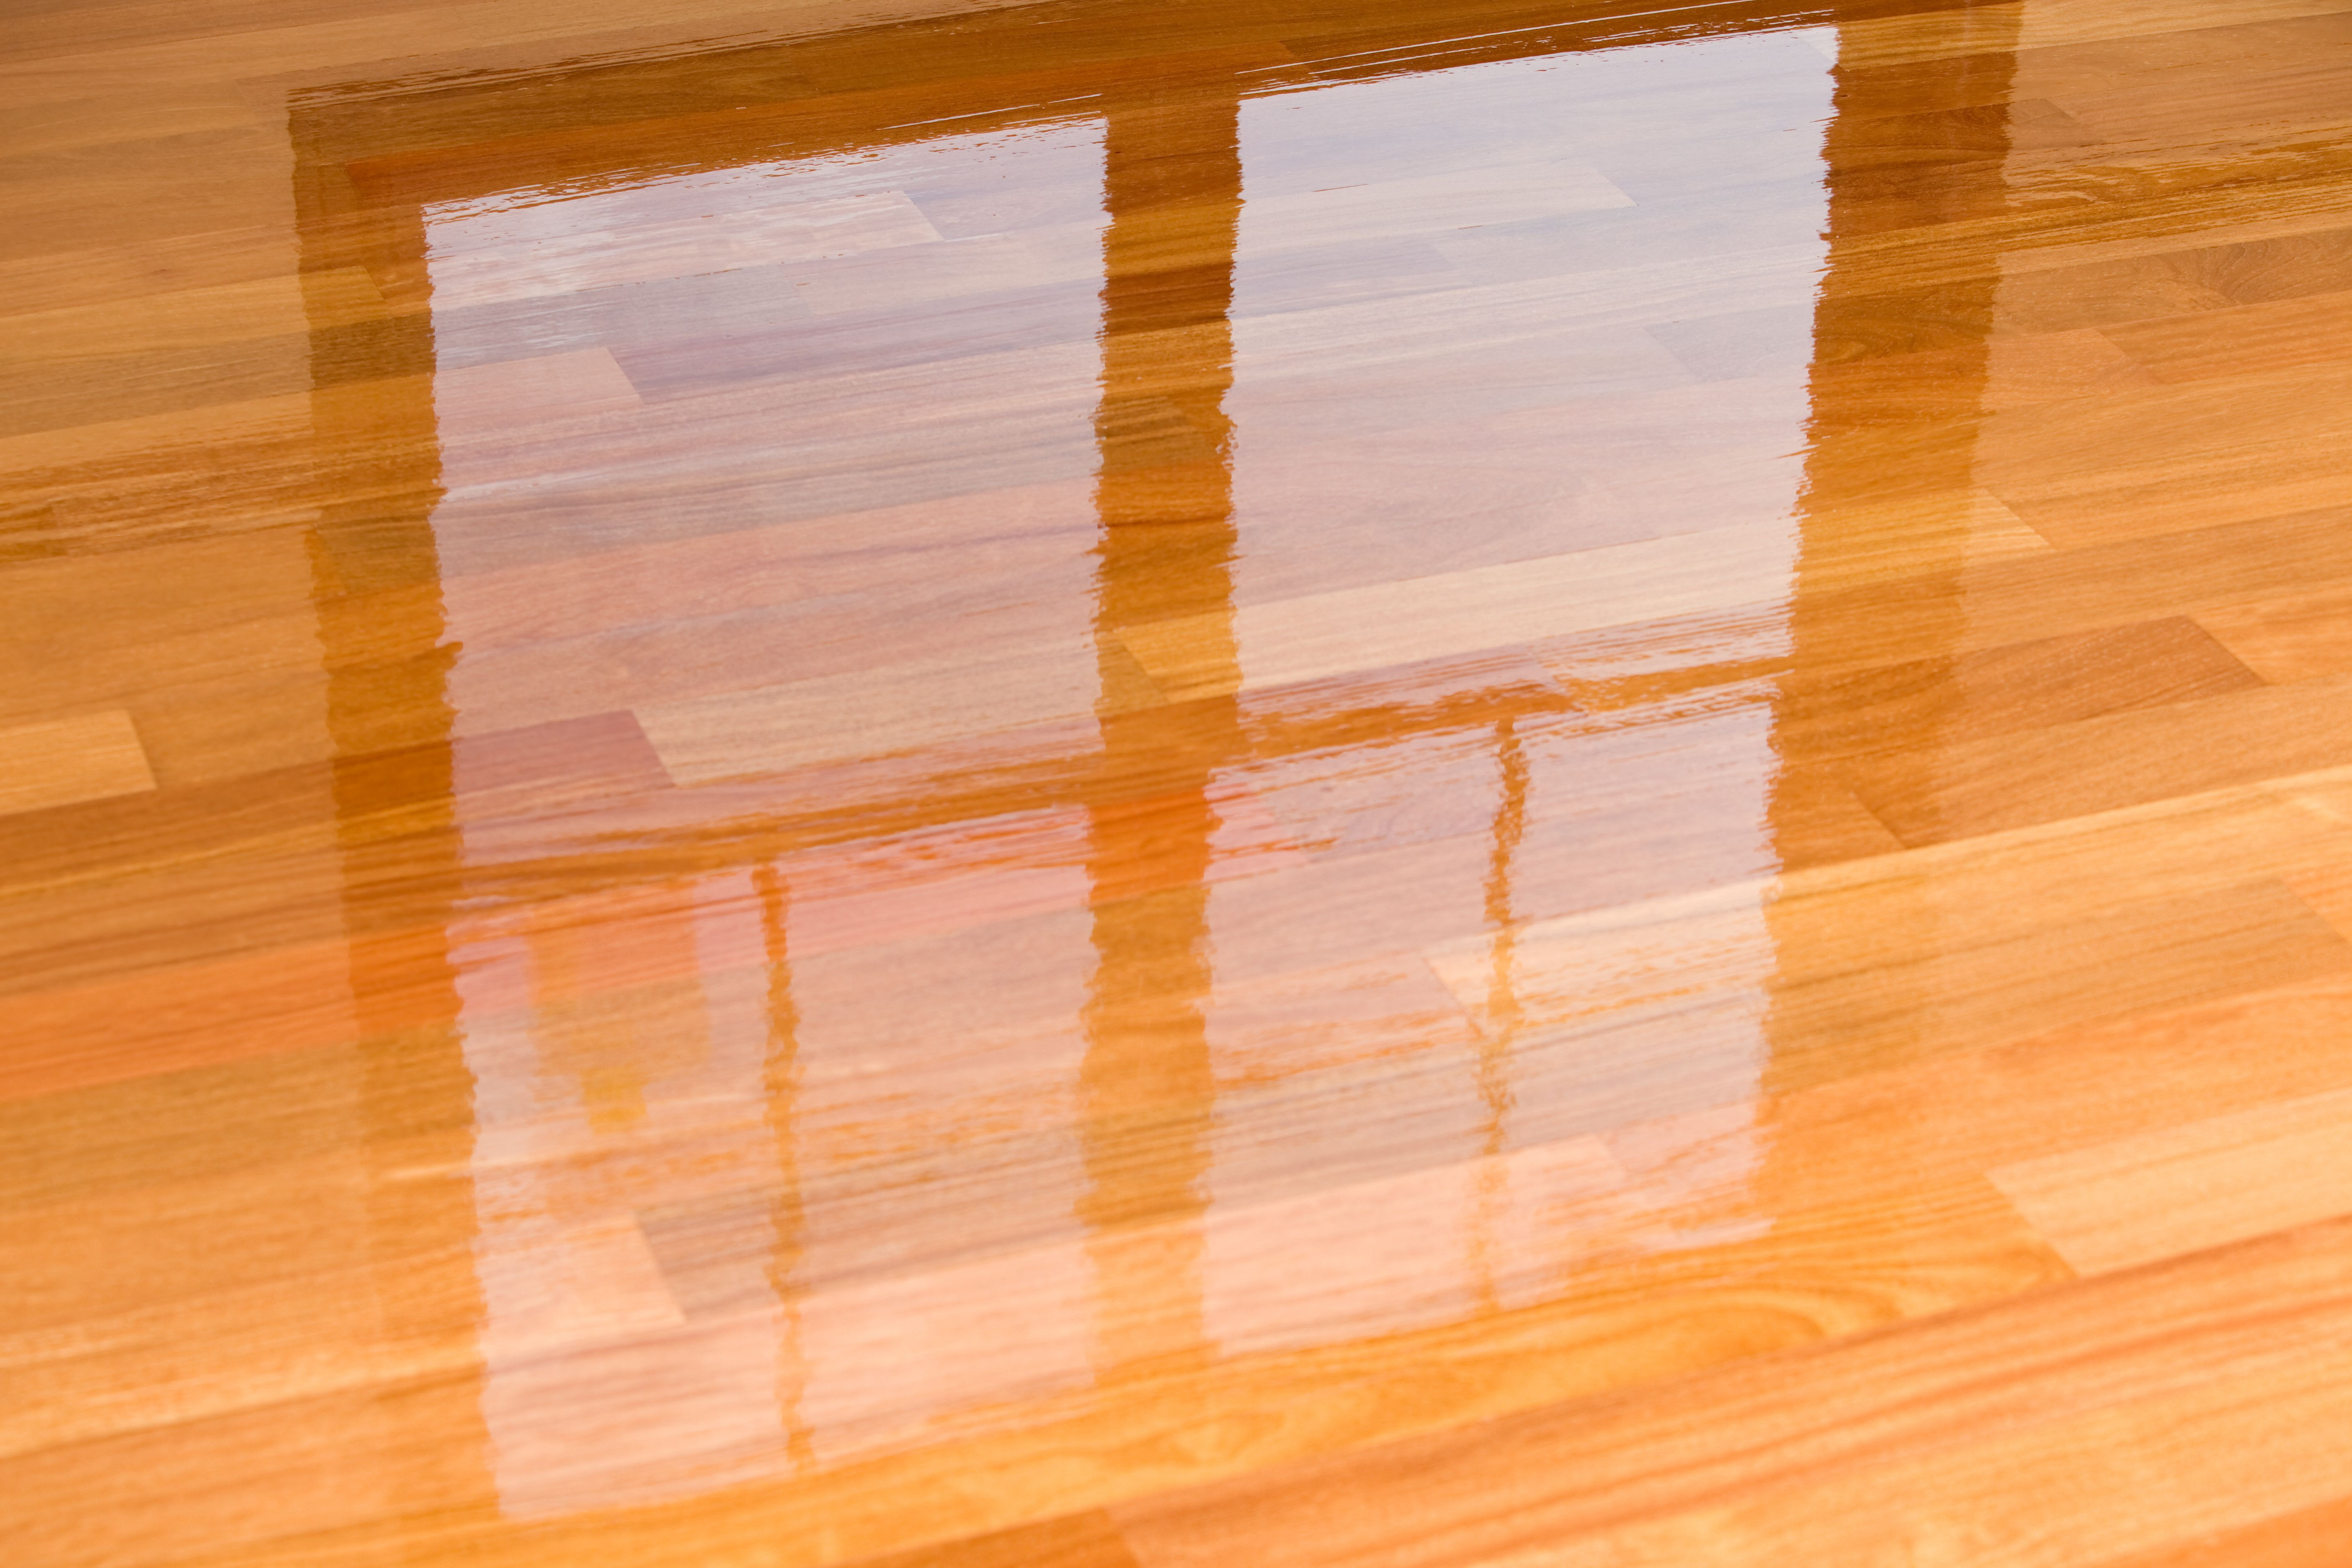 beveled edge hardwood flooring of guide to laminate flooring water and damage repair inside wet polyurethane on new hardwood floor with window reflection 183846705 582e34da3df78c6f6a403968